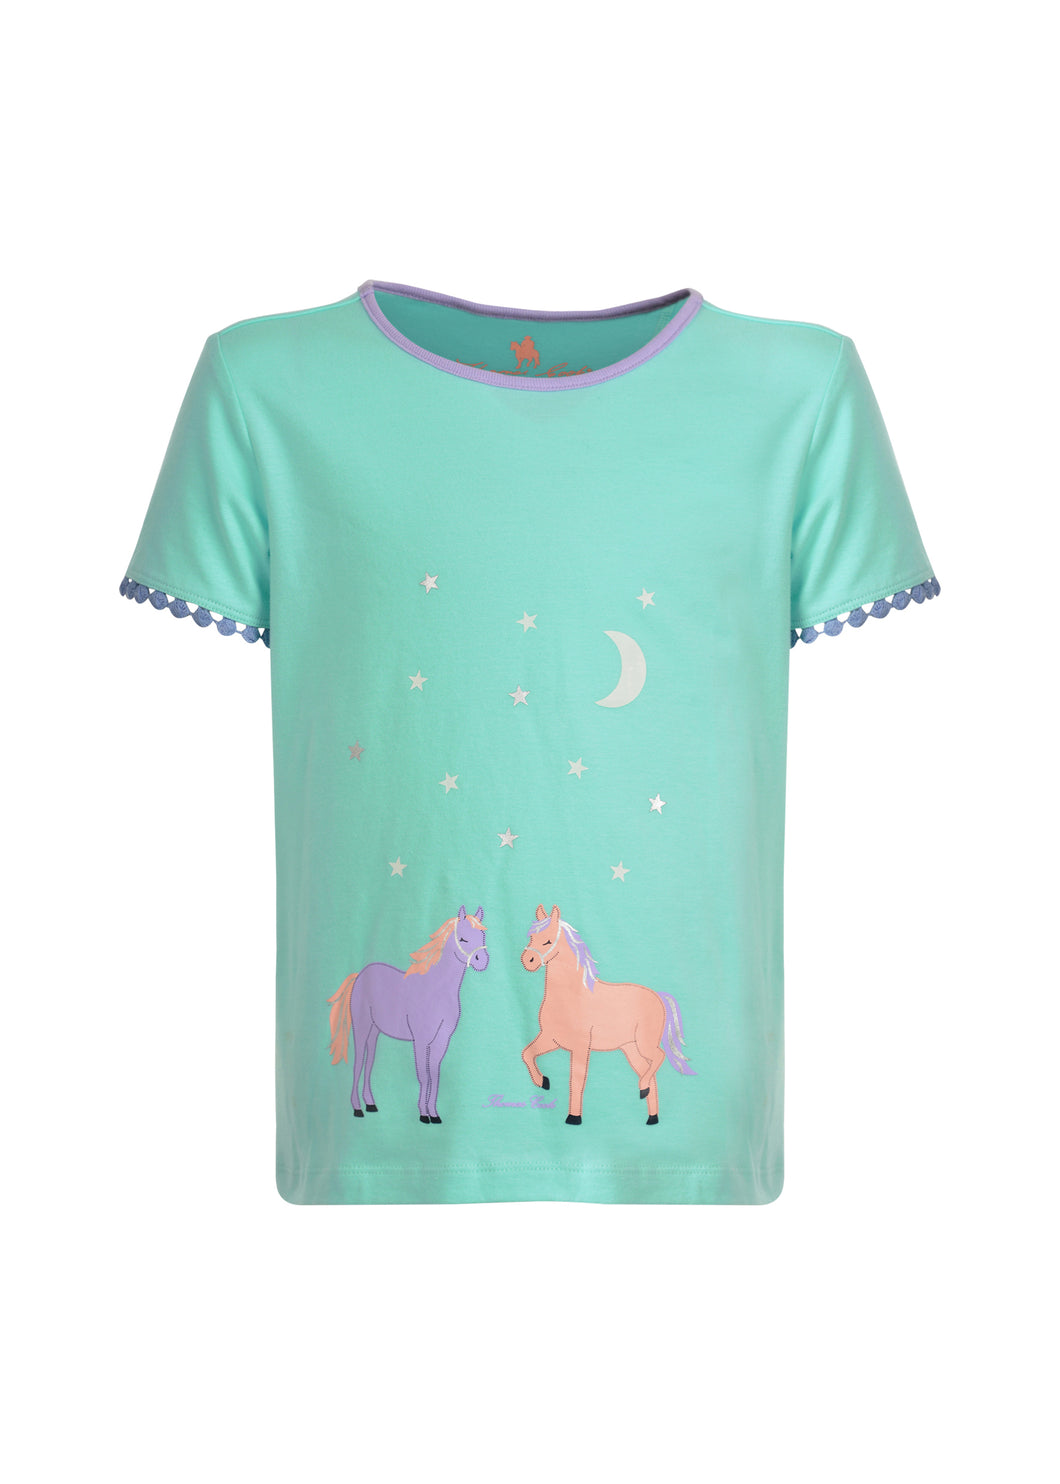 GIRLS GLOW IN THE DARK HORSE PJs